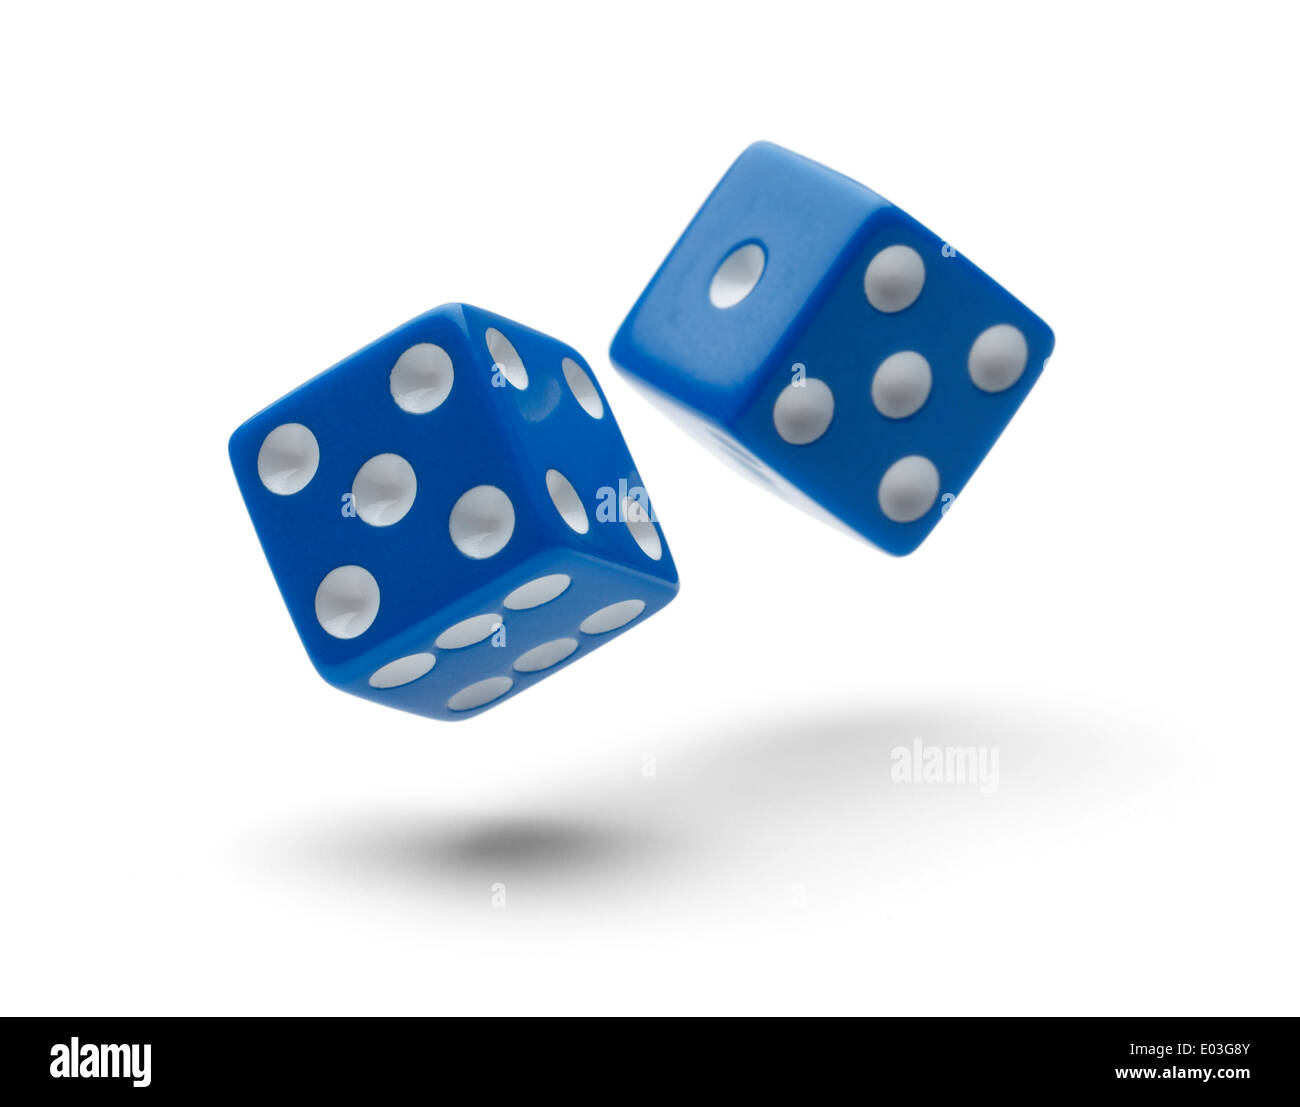 Two Dice Rolling through the Air Isolated on White Background with Shadows. - Stock Image